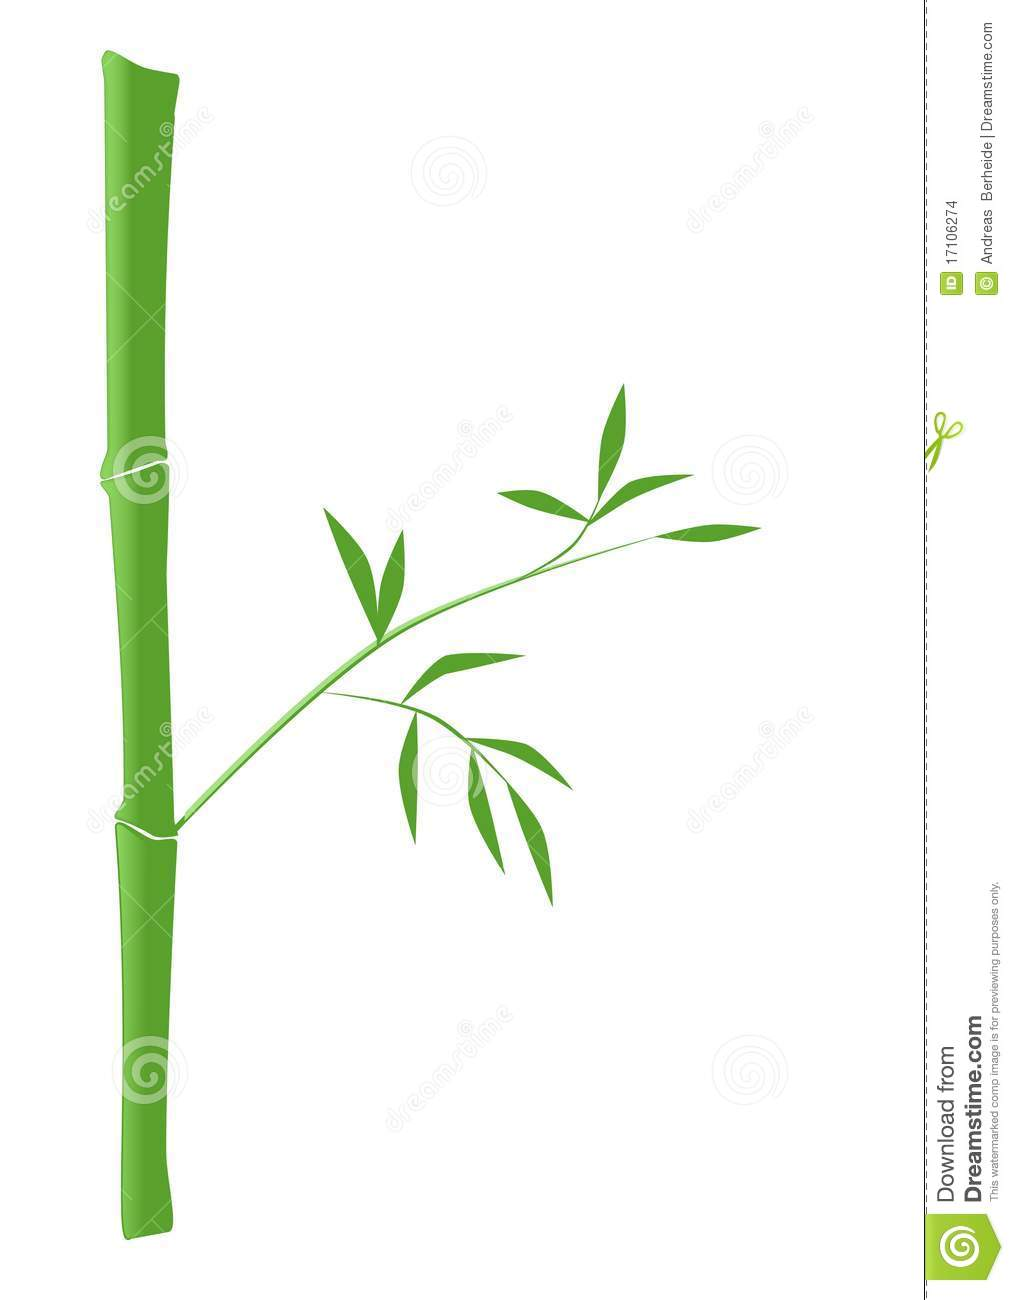 Bamboo Sticks Clip Art.